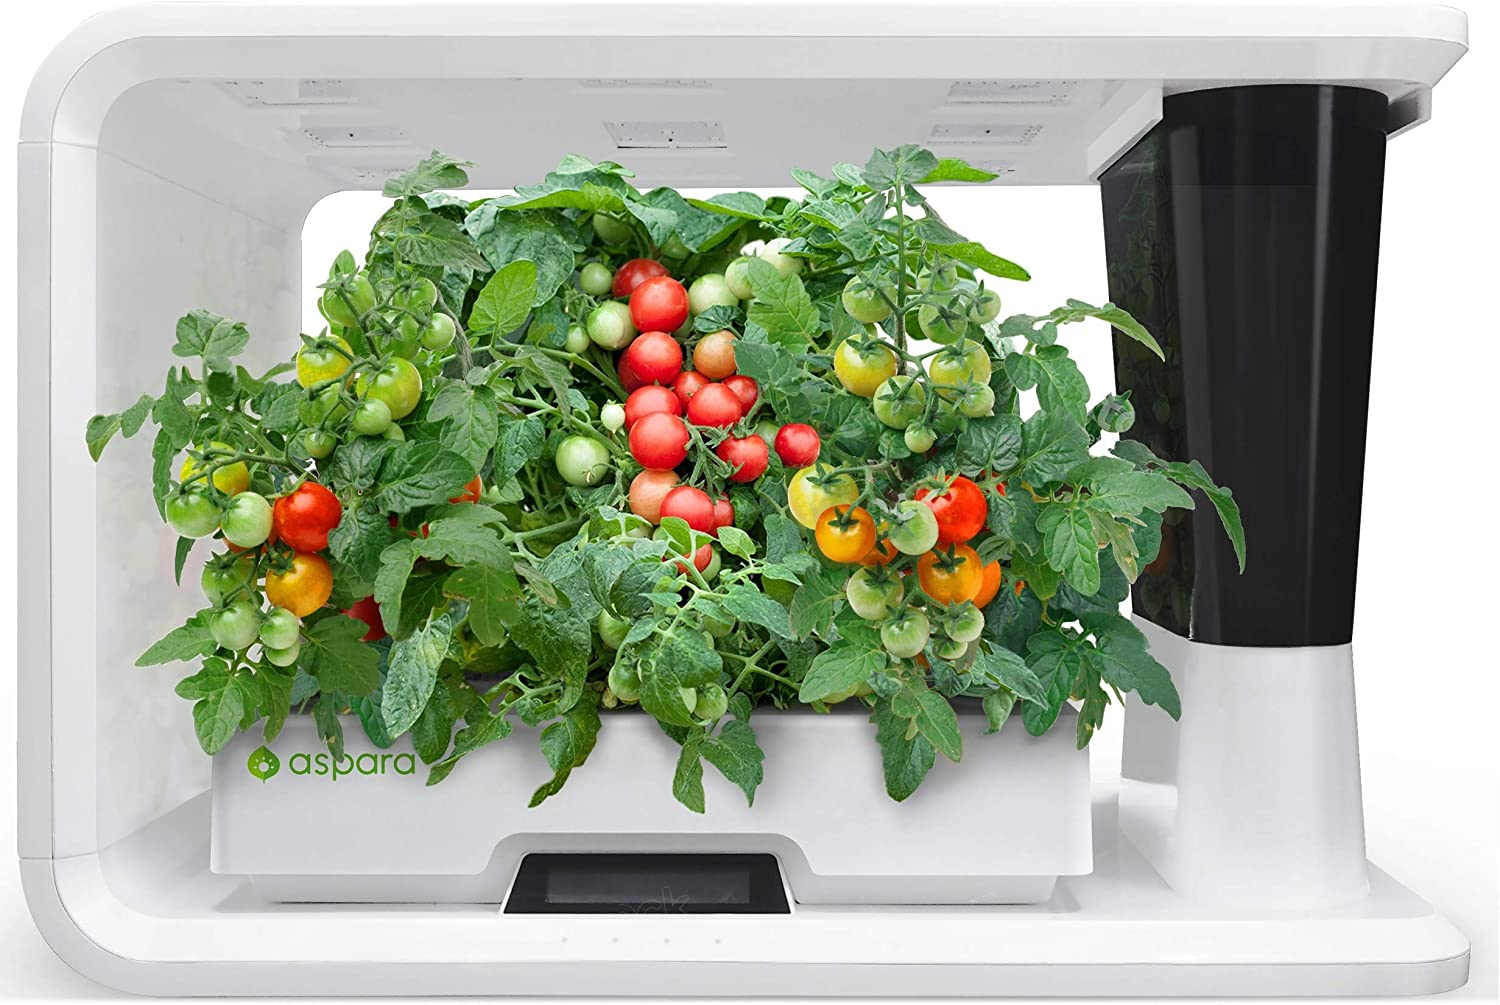 aspara Nature – AS1001WH Smart IoT Hydroponics Grower Growing System, 16 grow pods, 10 sensors, all seasons indoor garden support Apple iOS and Google Android app